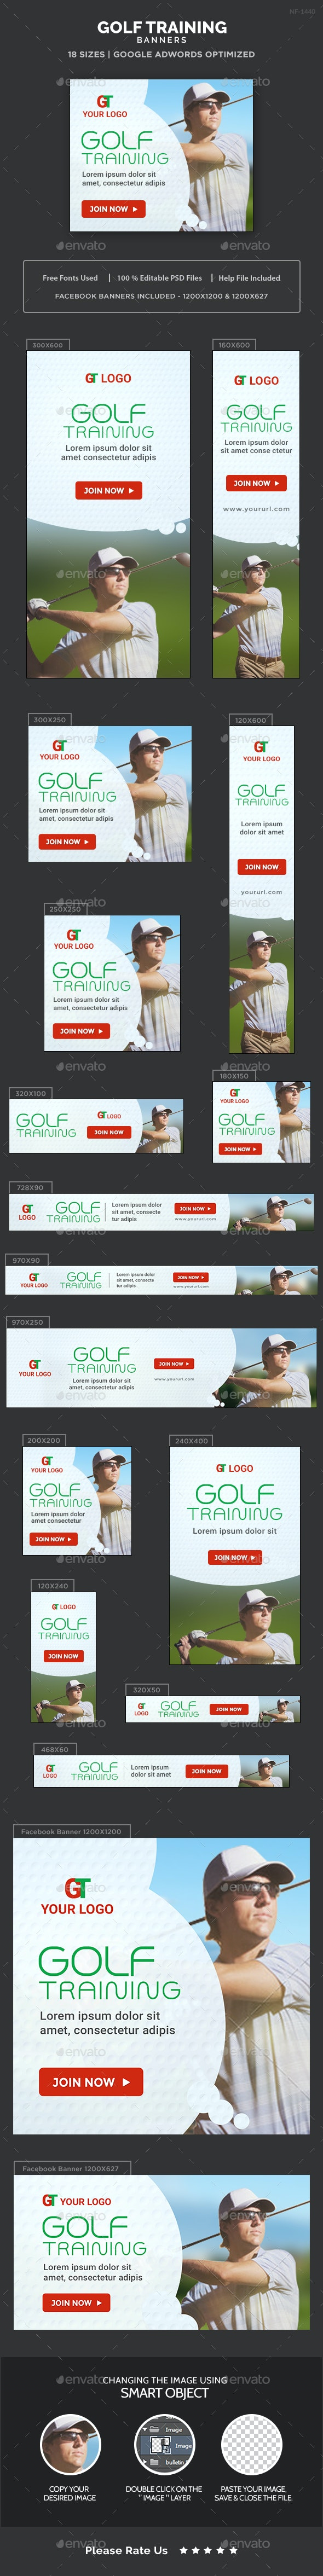 Golf Training Banners - Banners & Ads Web Elements